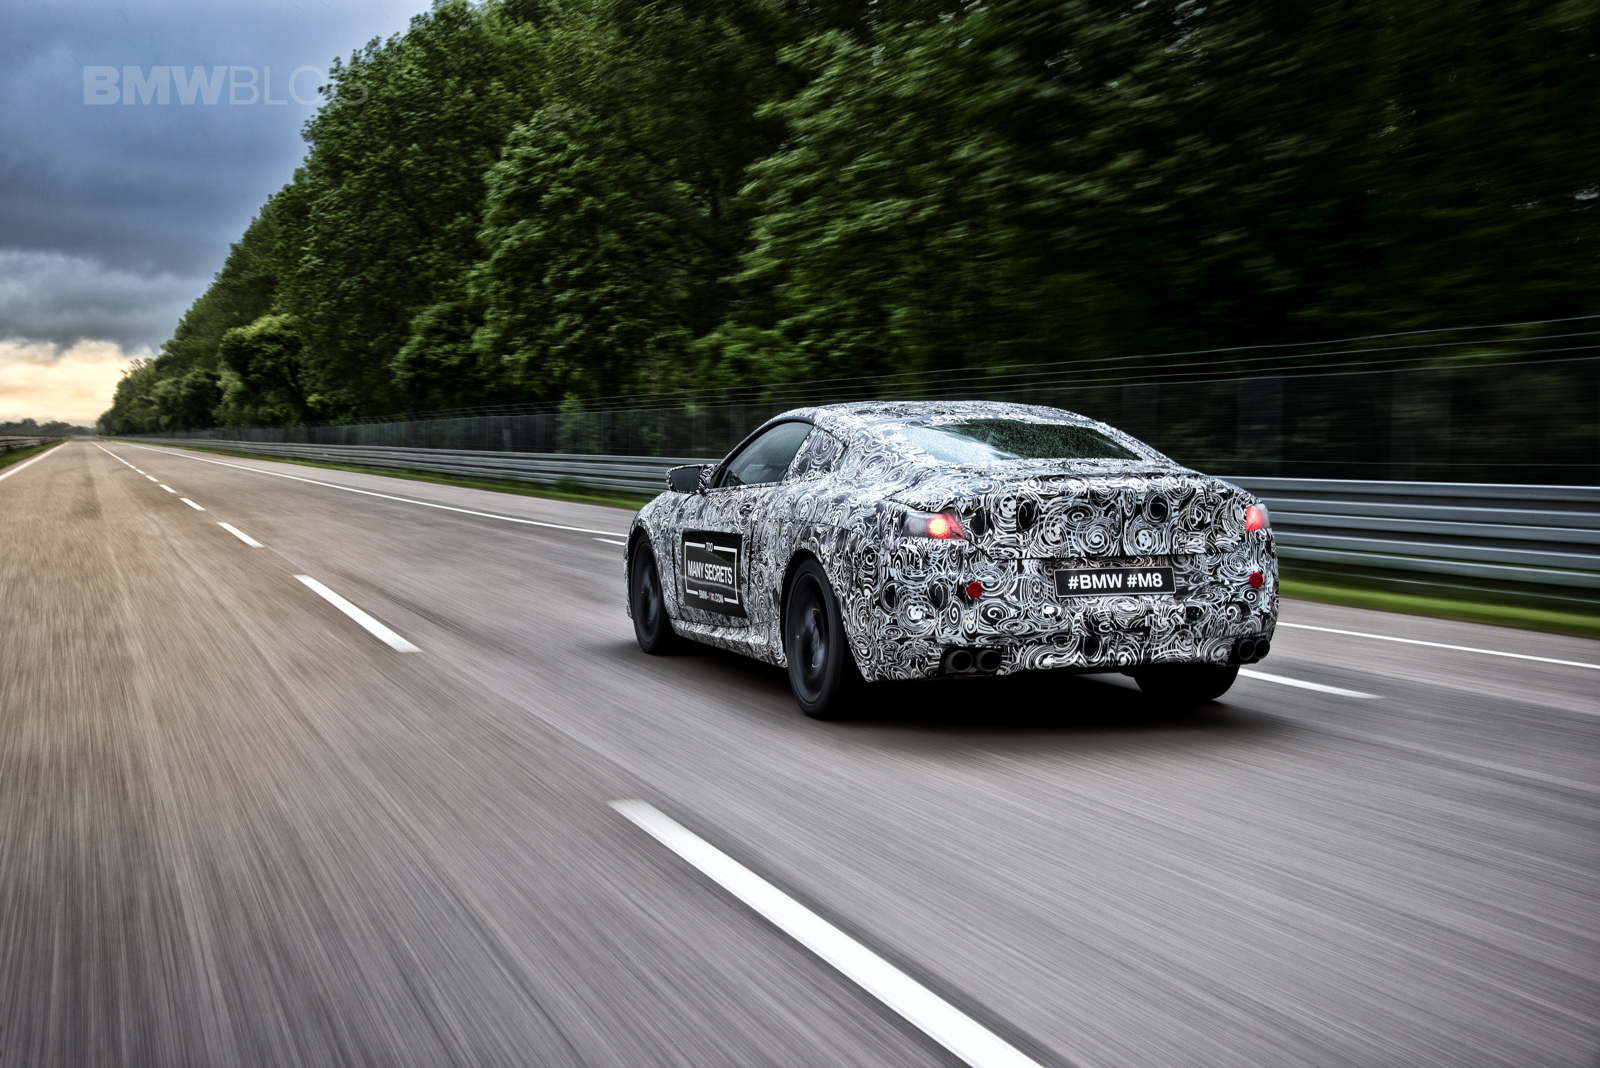 Listen to the BMW M8 exhaust, try and figure out the engine